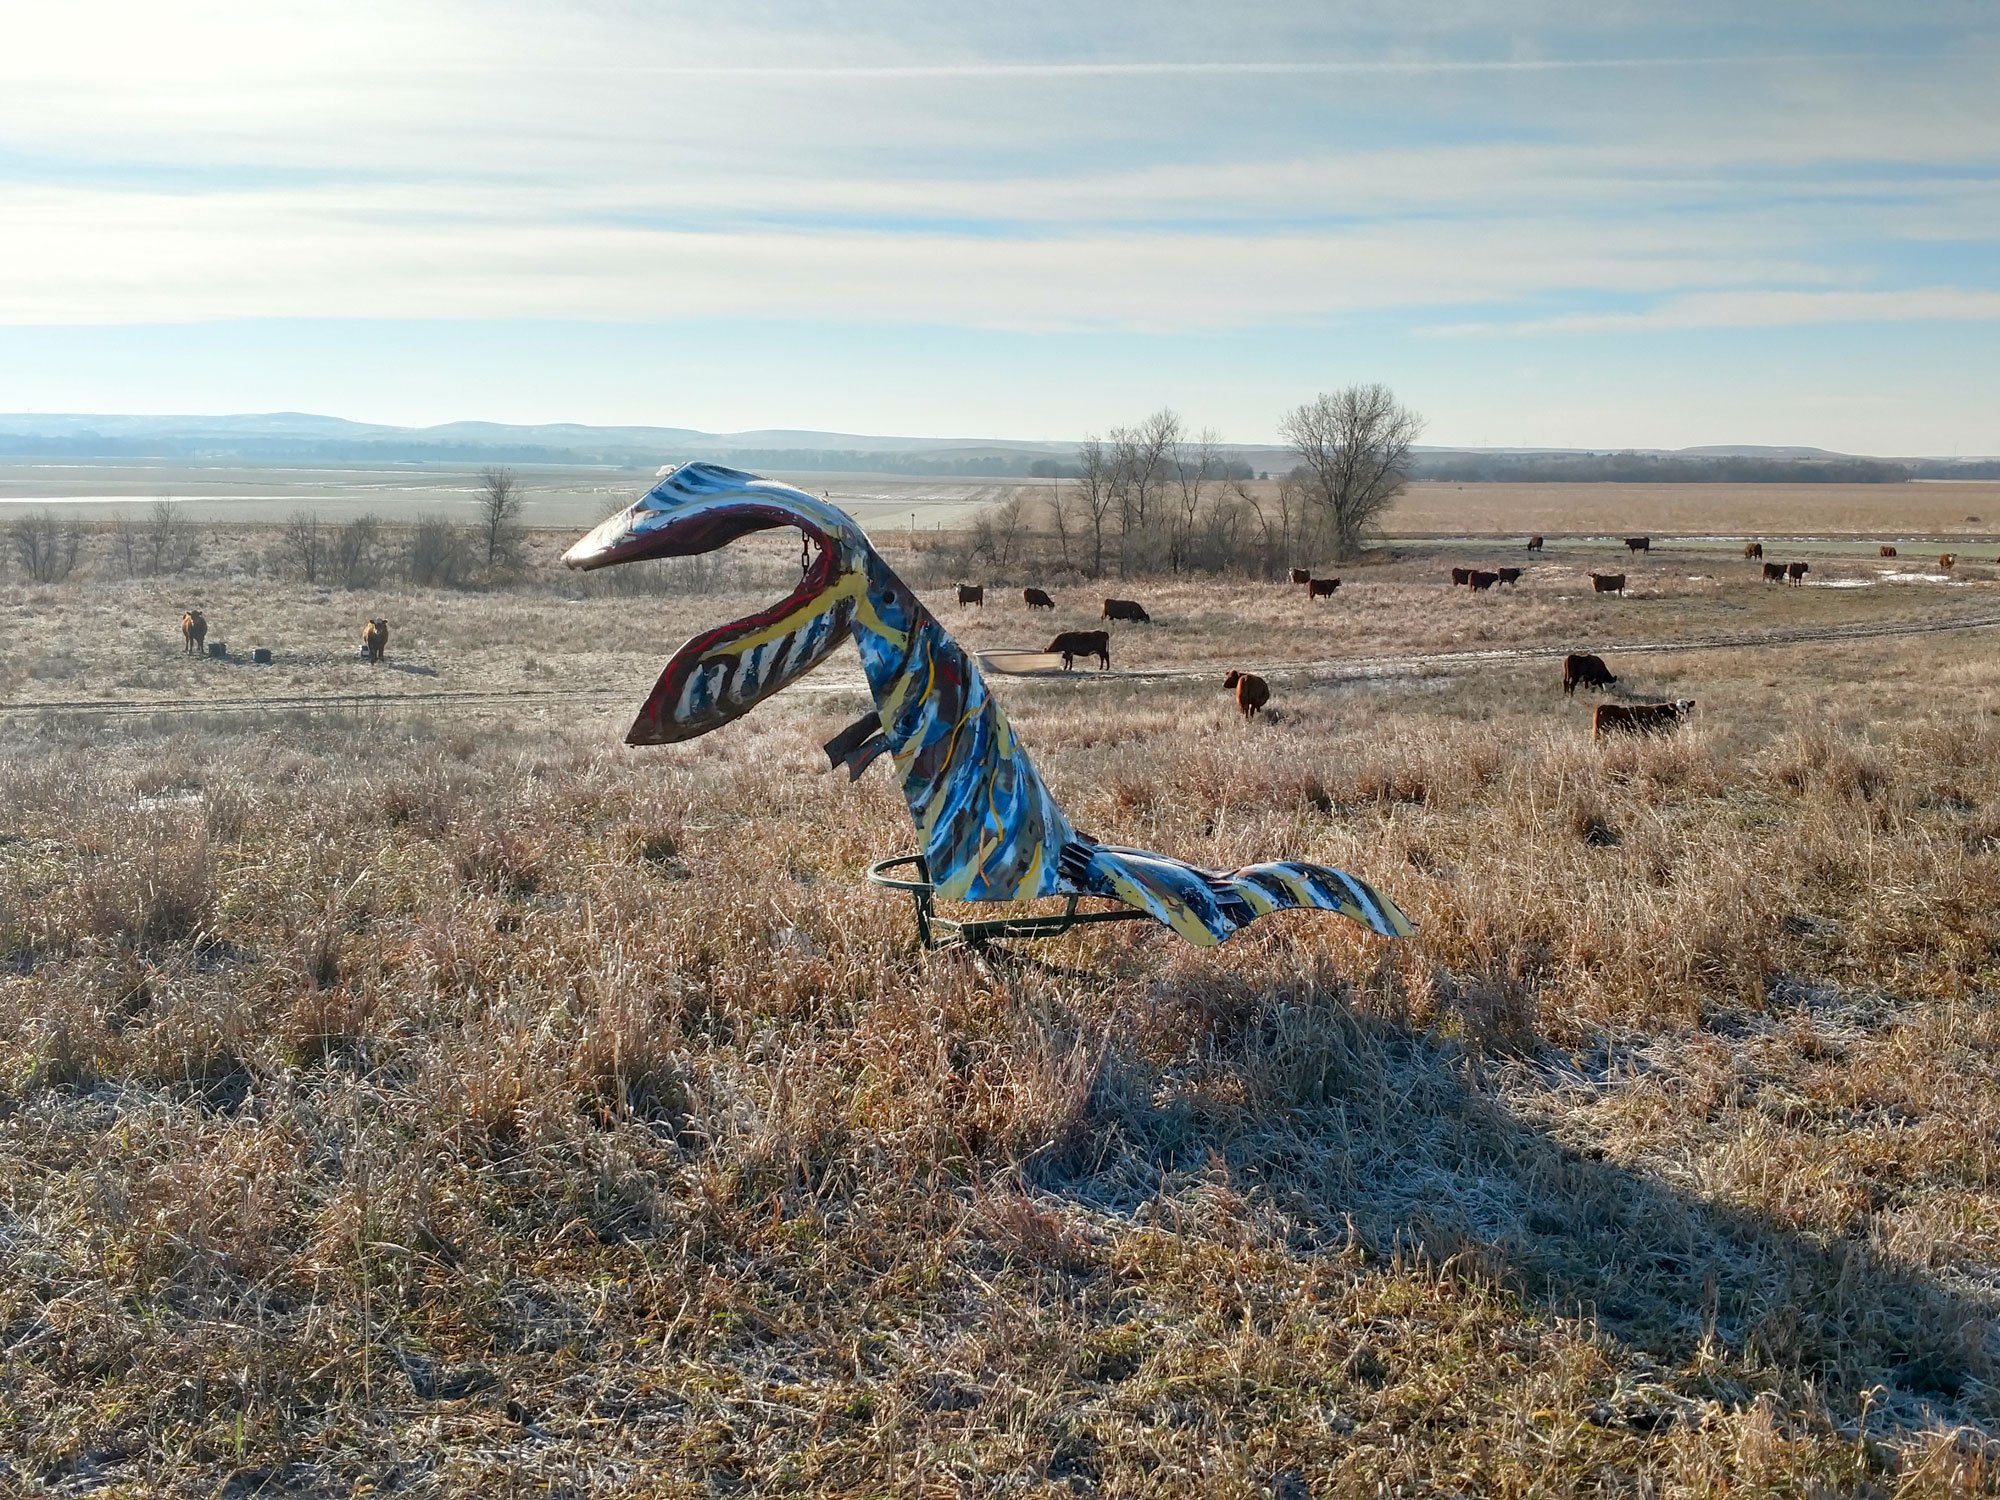 Super Bug, one of the creations in the Open Range Zoo along Highway 18, between Lincoln and Sylvan Grove, Kansas (Photo by Kris Heinze)